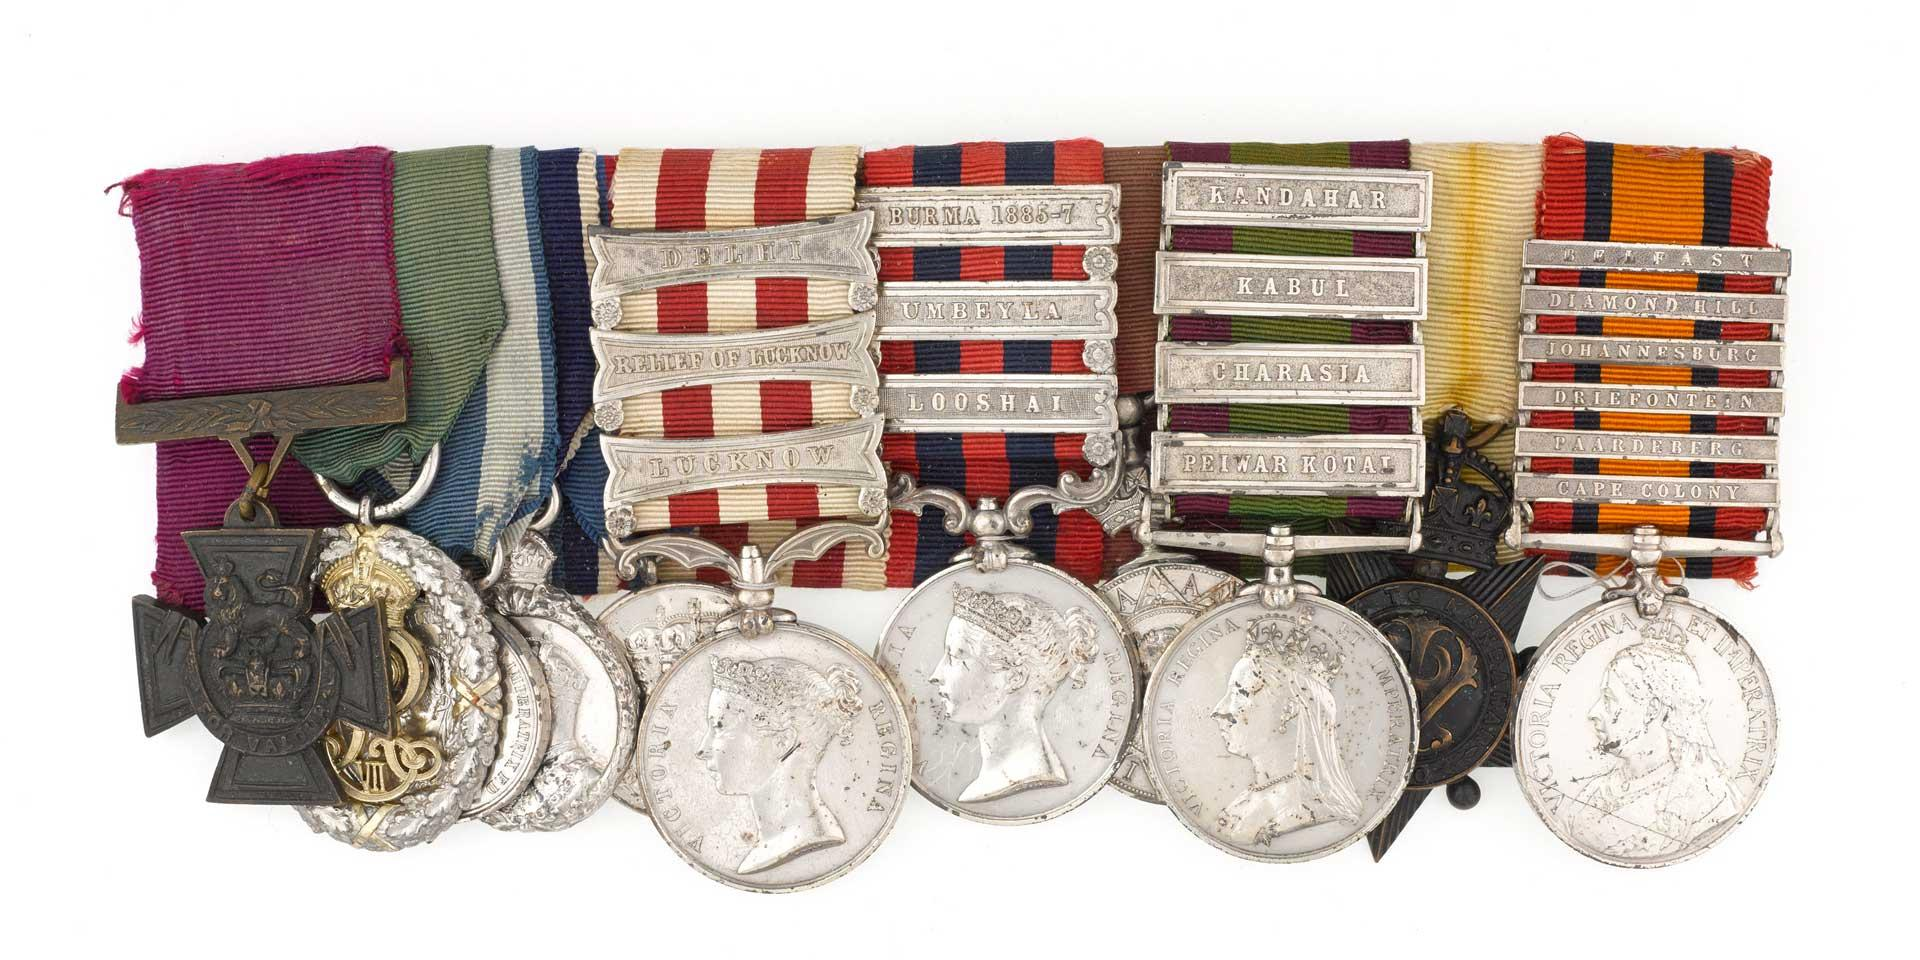 Victoria Cross group awarded to Field Marshal Lord Frederick Sleigh Roberts, 1857-1902